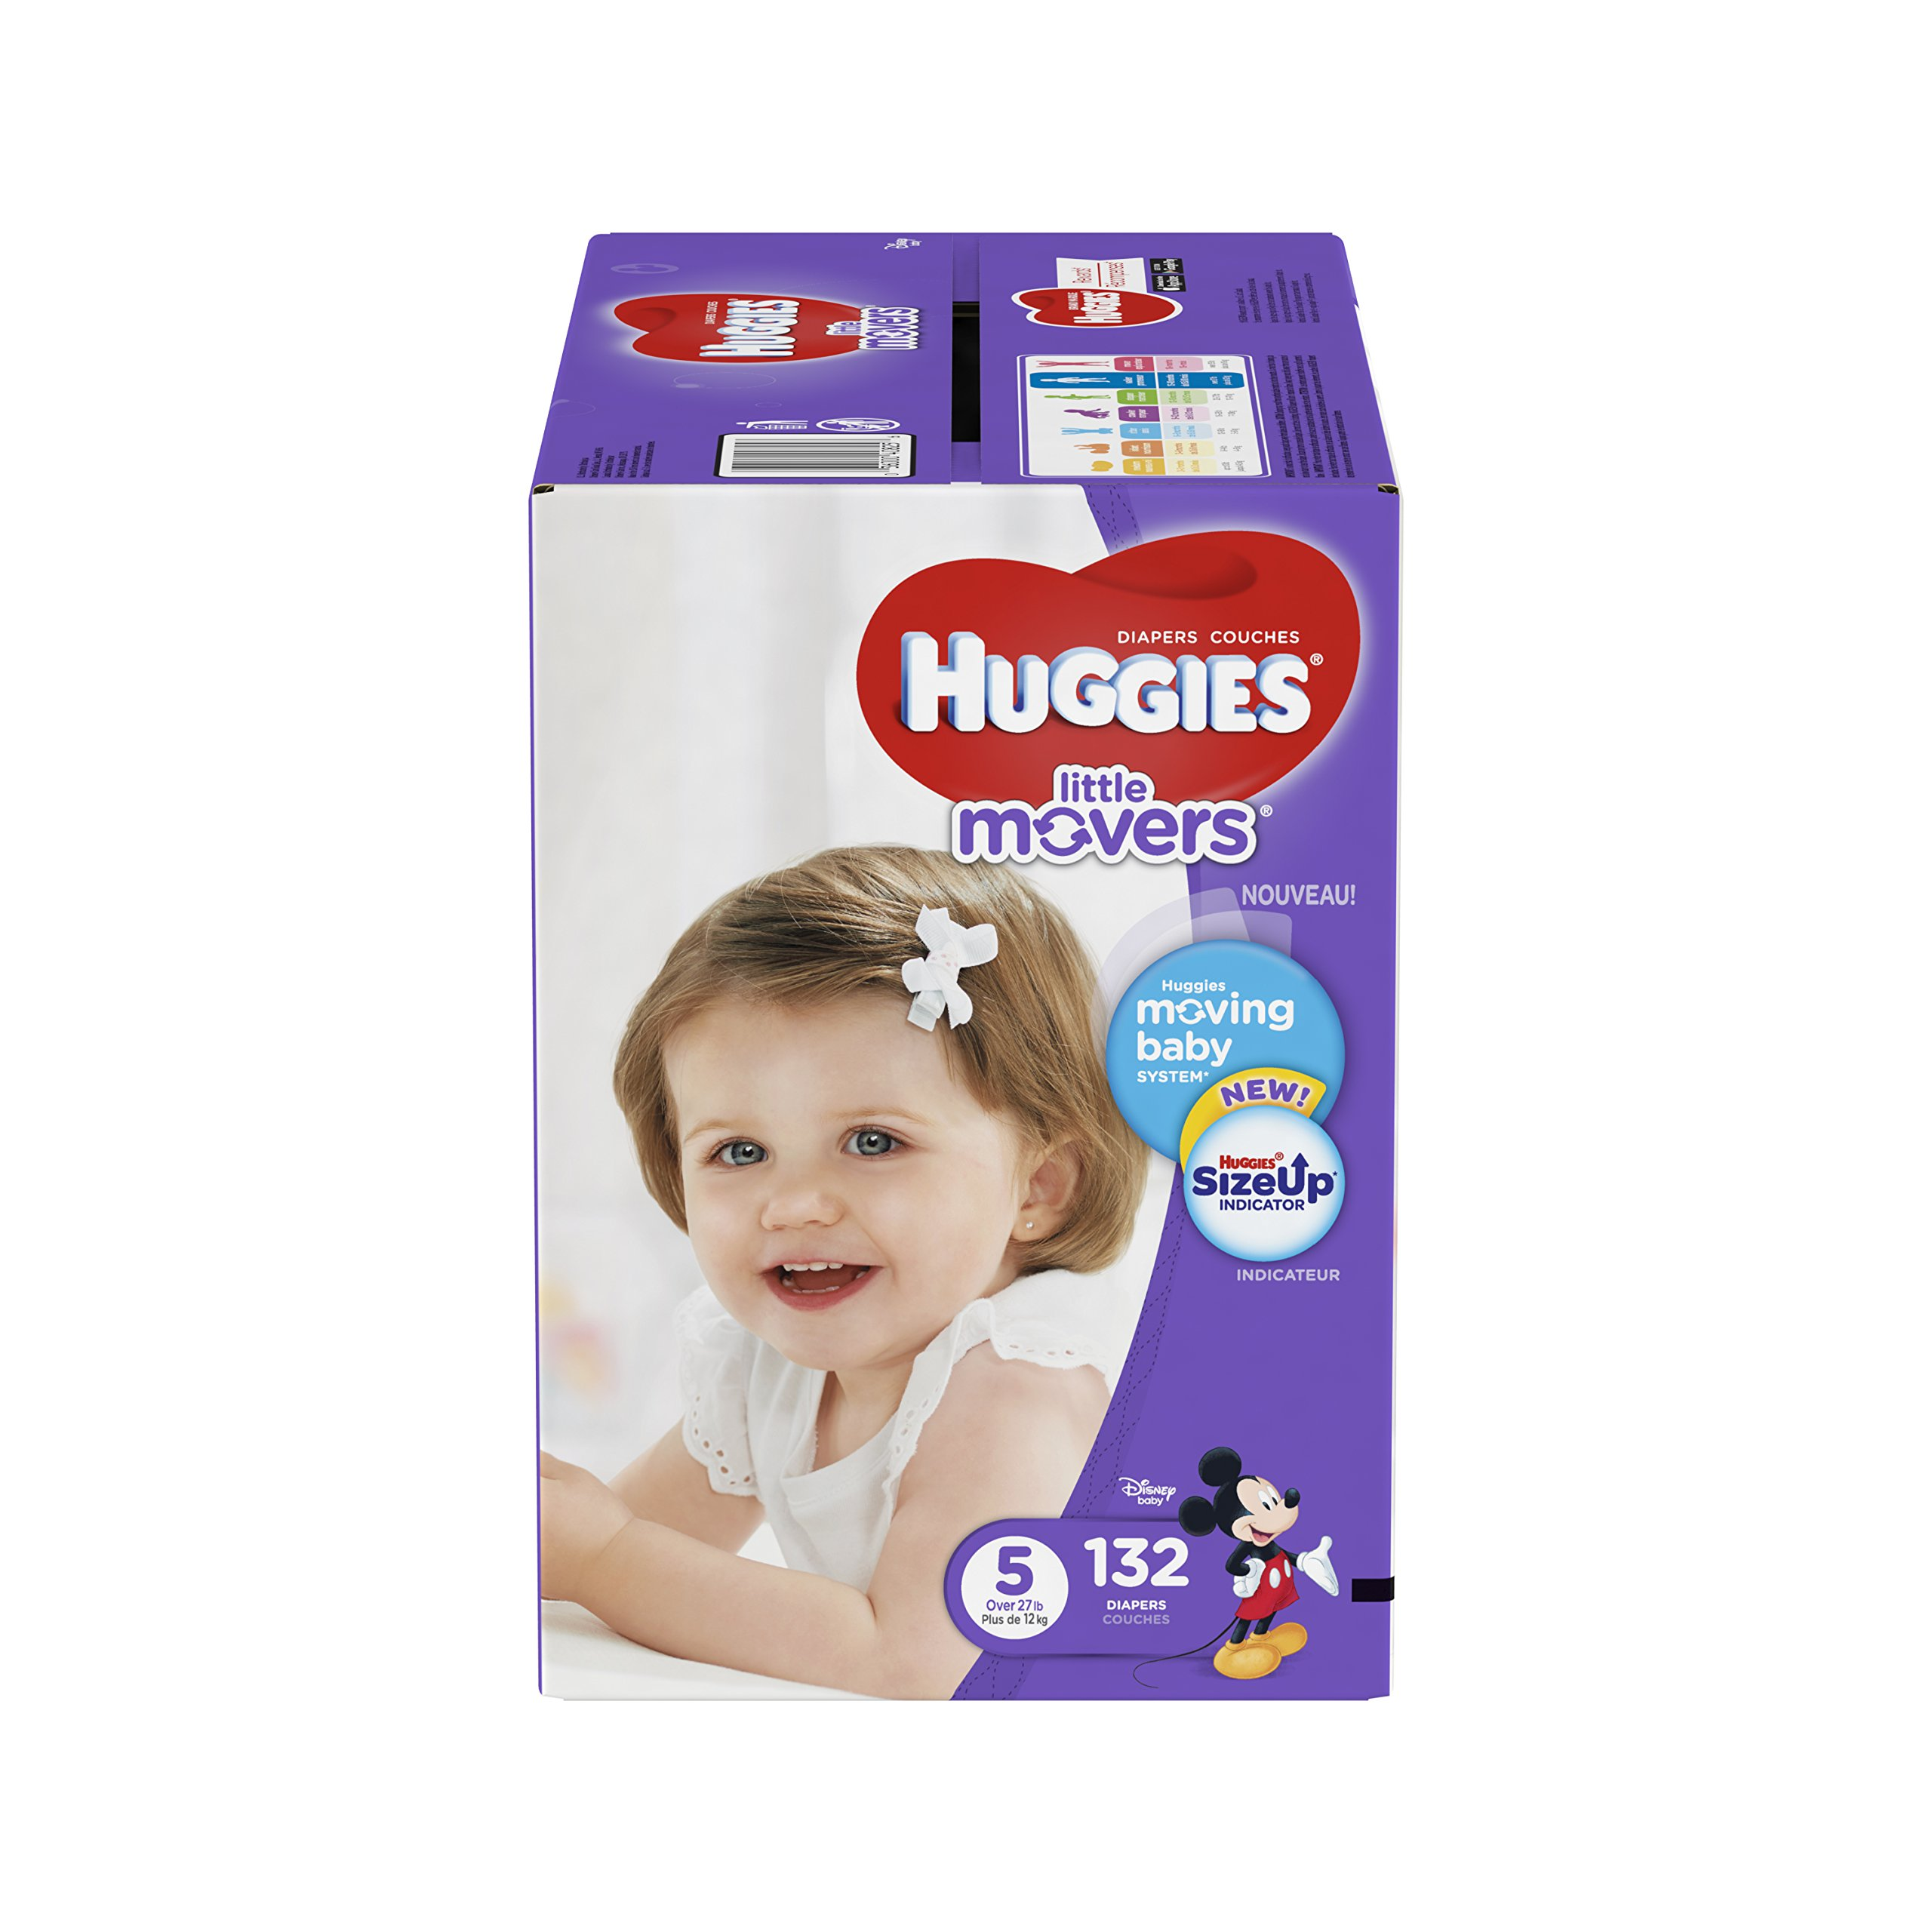 HUGGIES LITTLE MOVERS Diapers, Size 5 (27+ lb.), 132 Ct, ECONOMY PLUS (Packaging May Vary), Baby Diapers for Active Babies